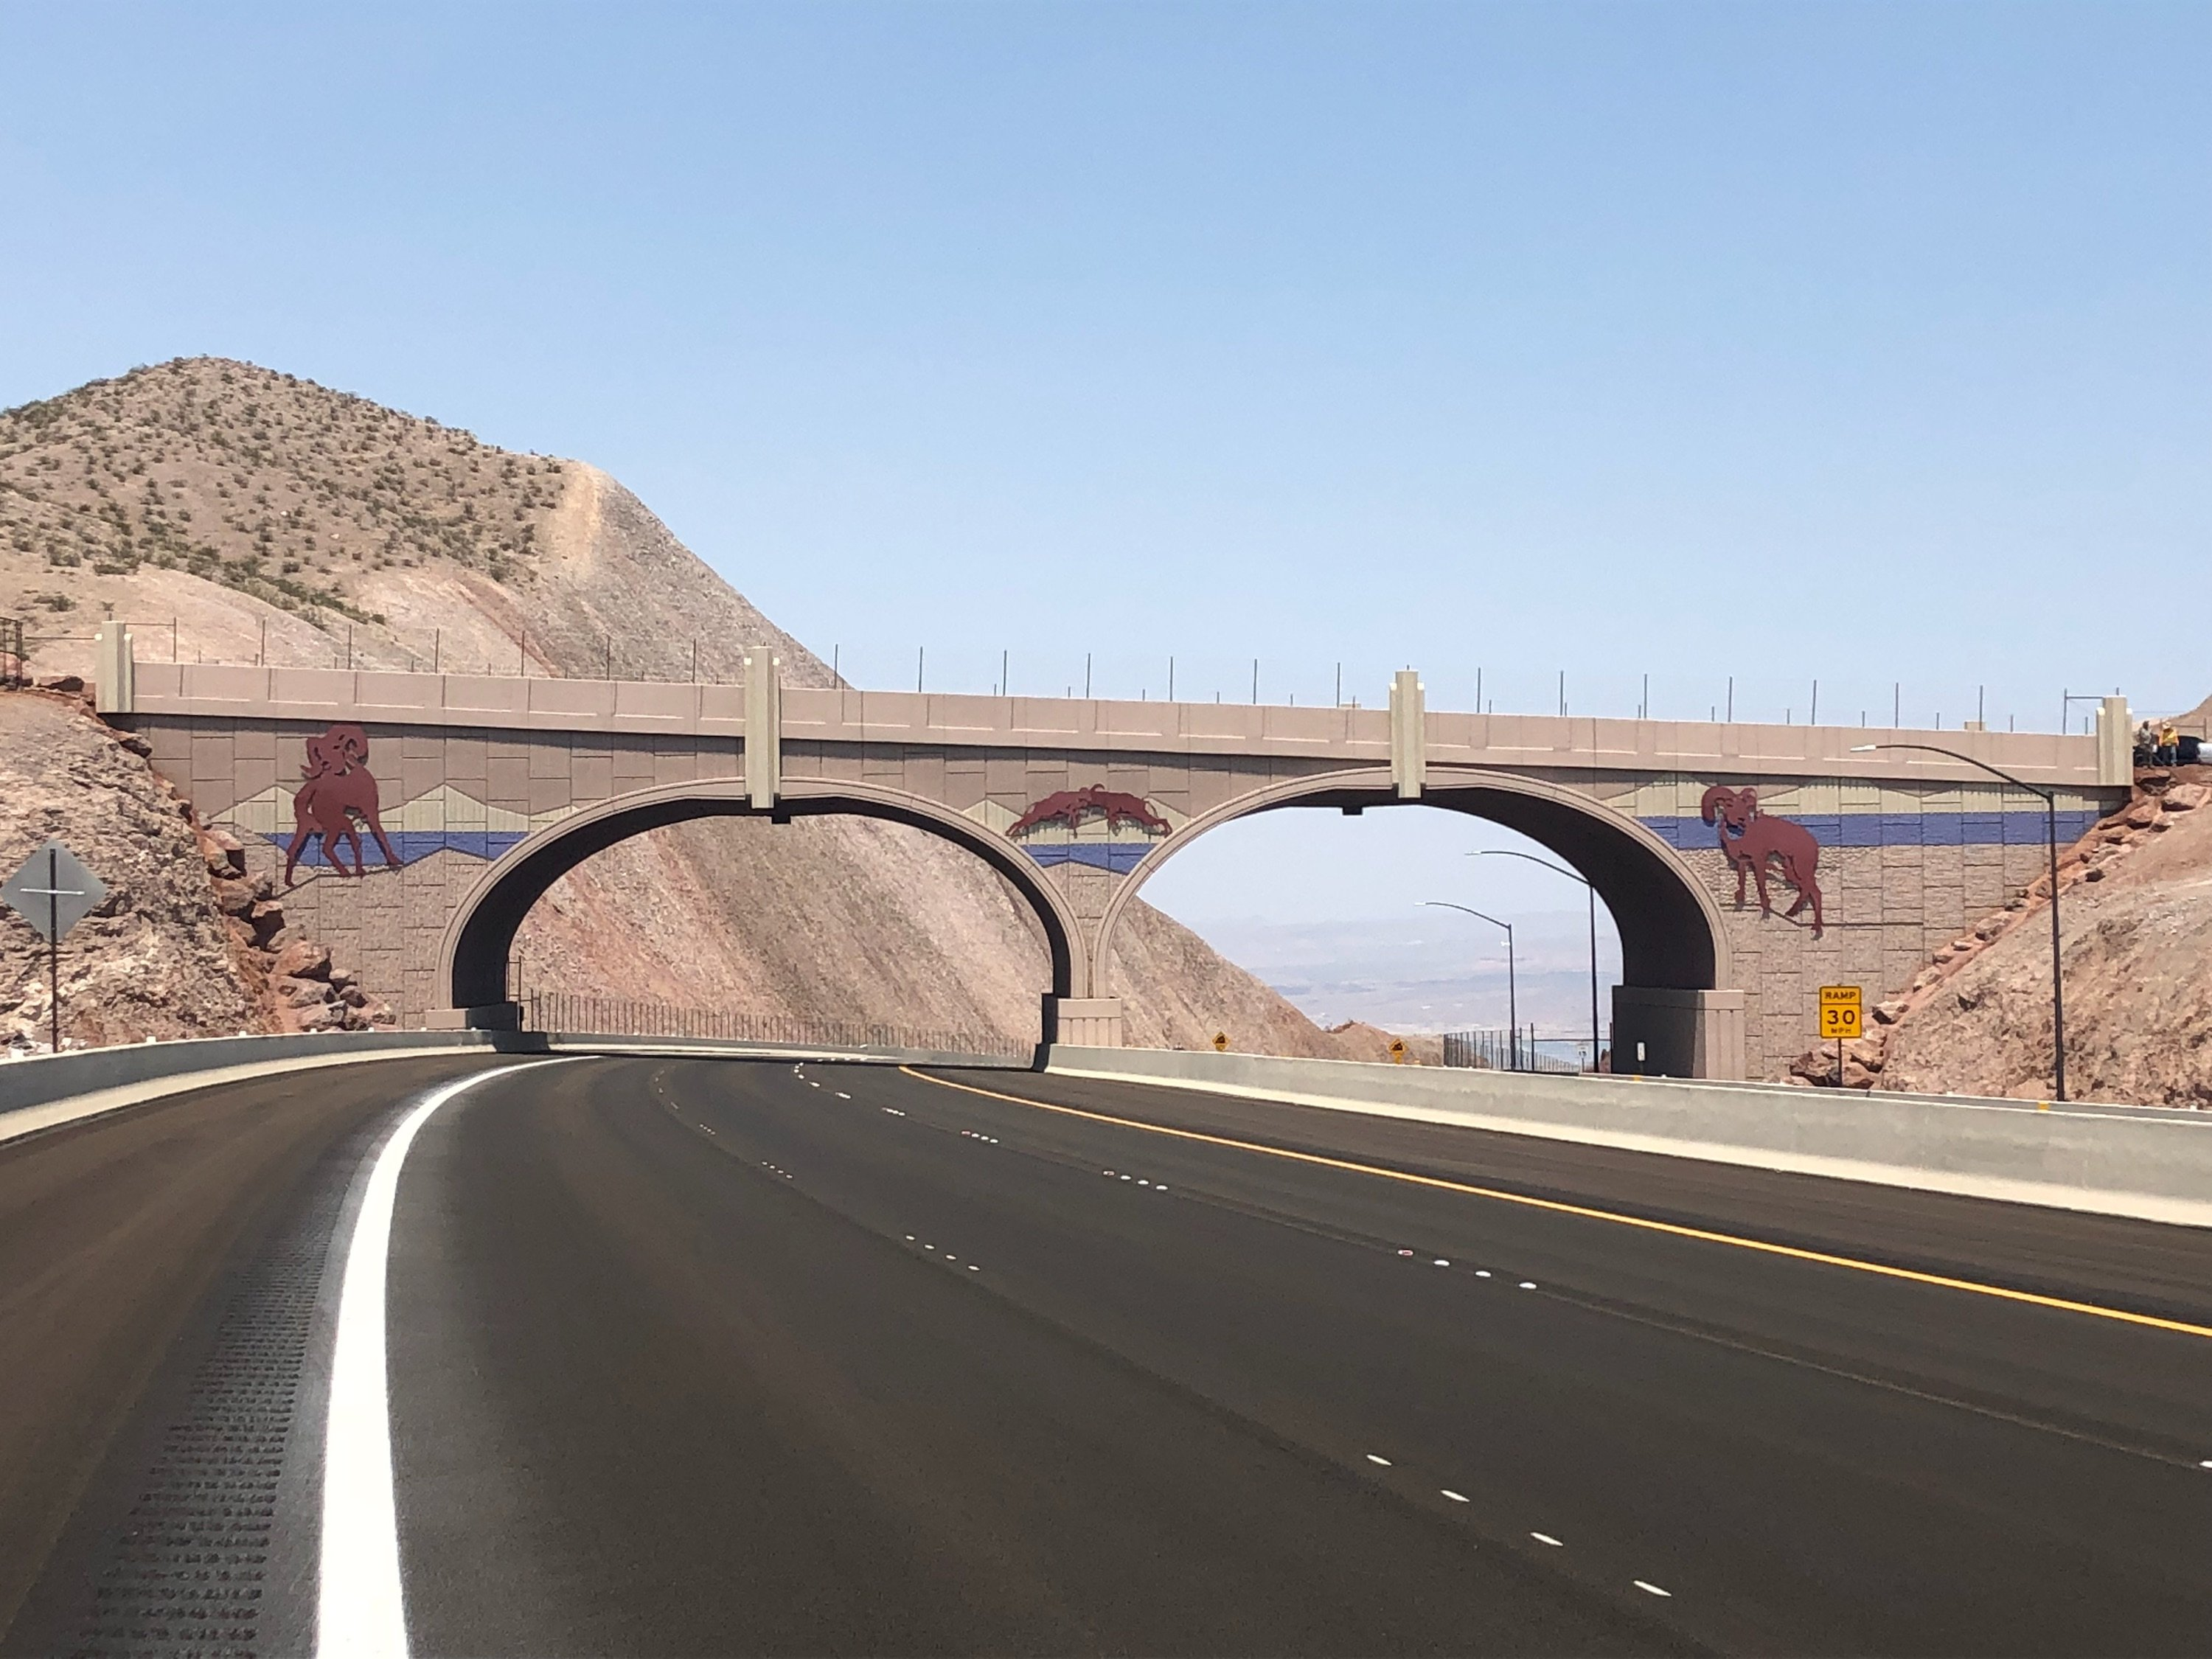 Tensar-ARES-Retaining-Wall-Systems-I-11-Boulder-City-Bypass-Project